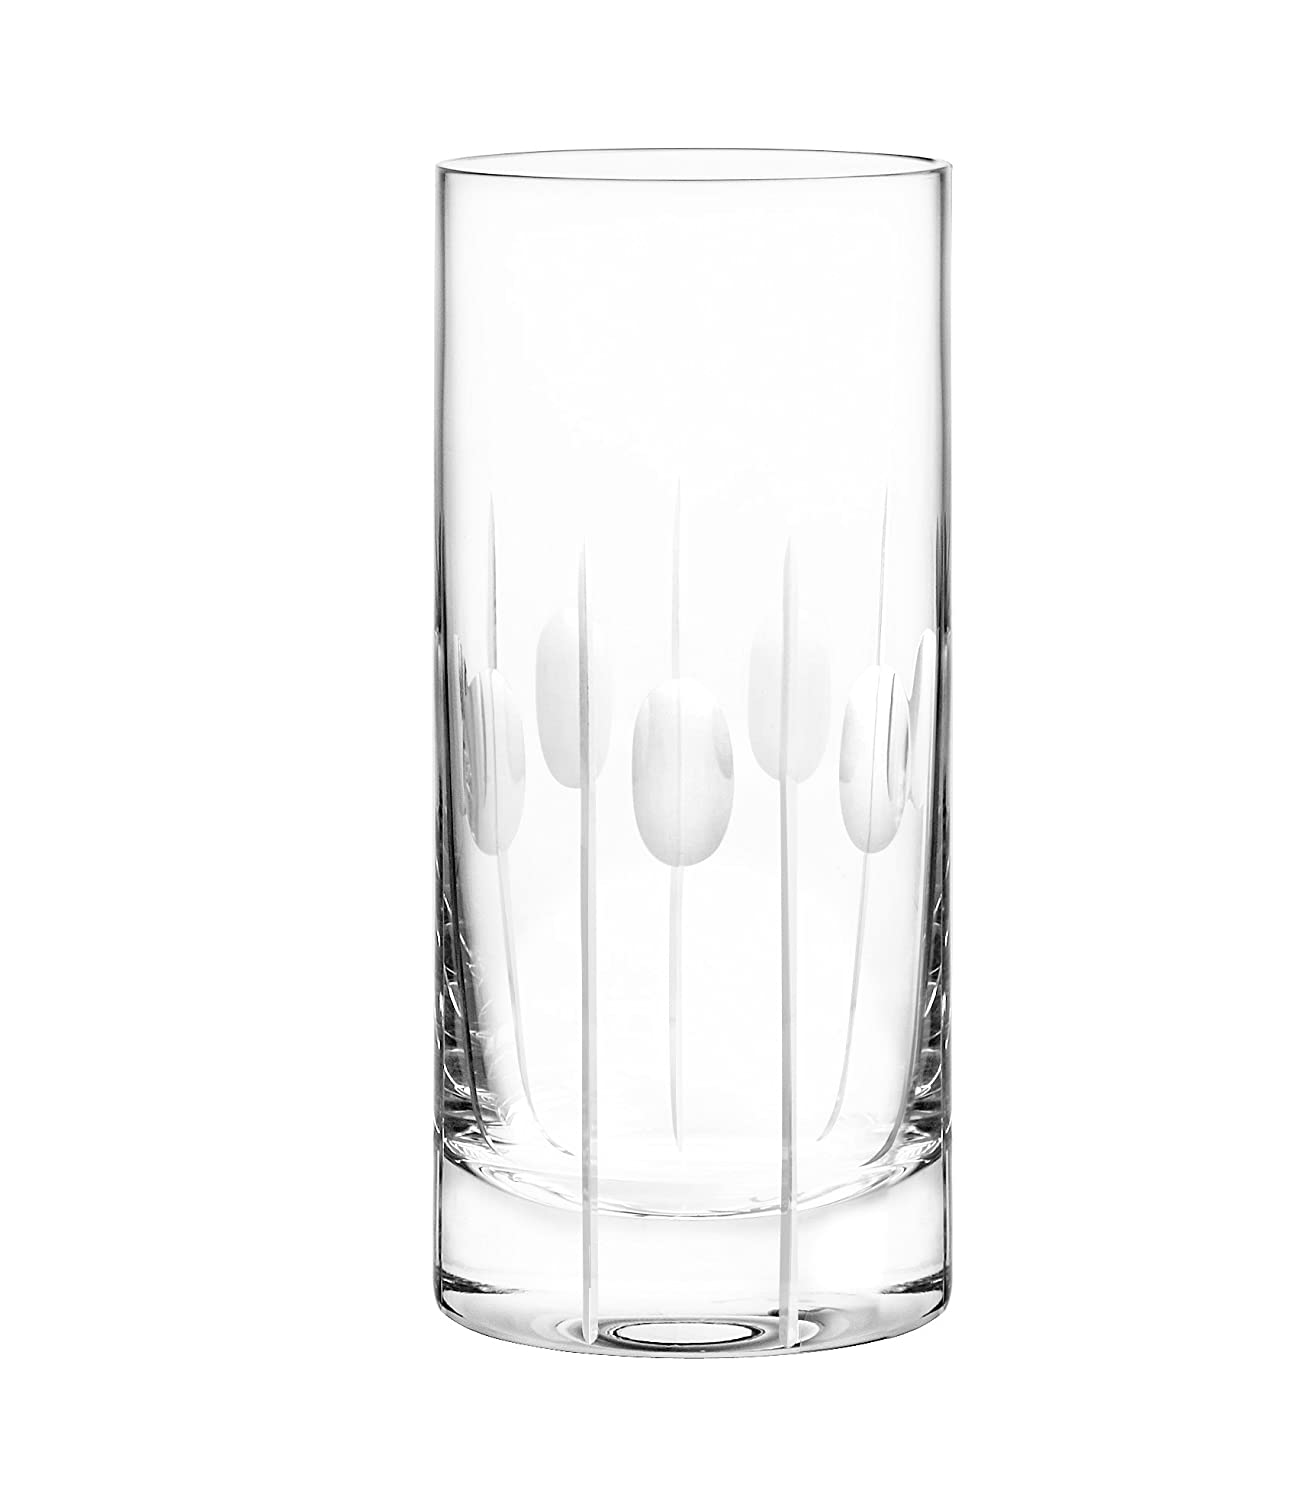 Qualia Glass Gulfstream Set of 4 High Ball 6.7 High Glasses with Vertical Cuts and Circular Design 16-ounce